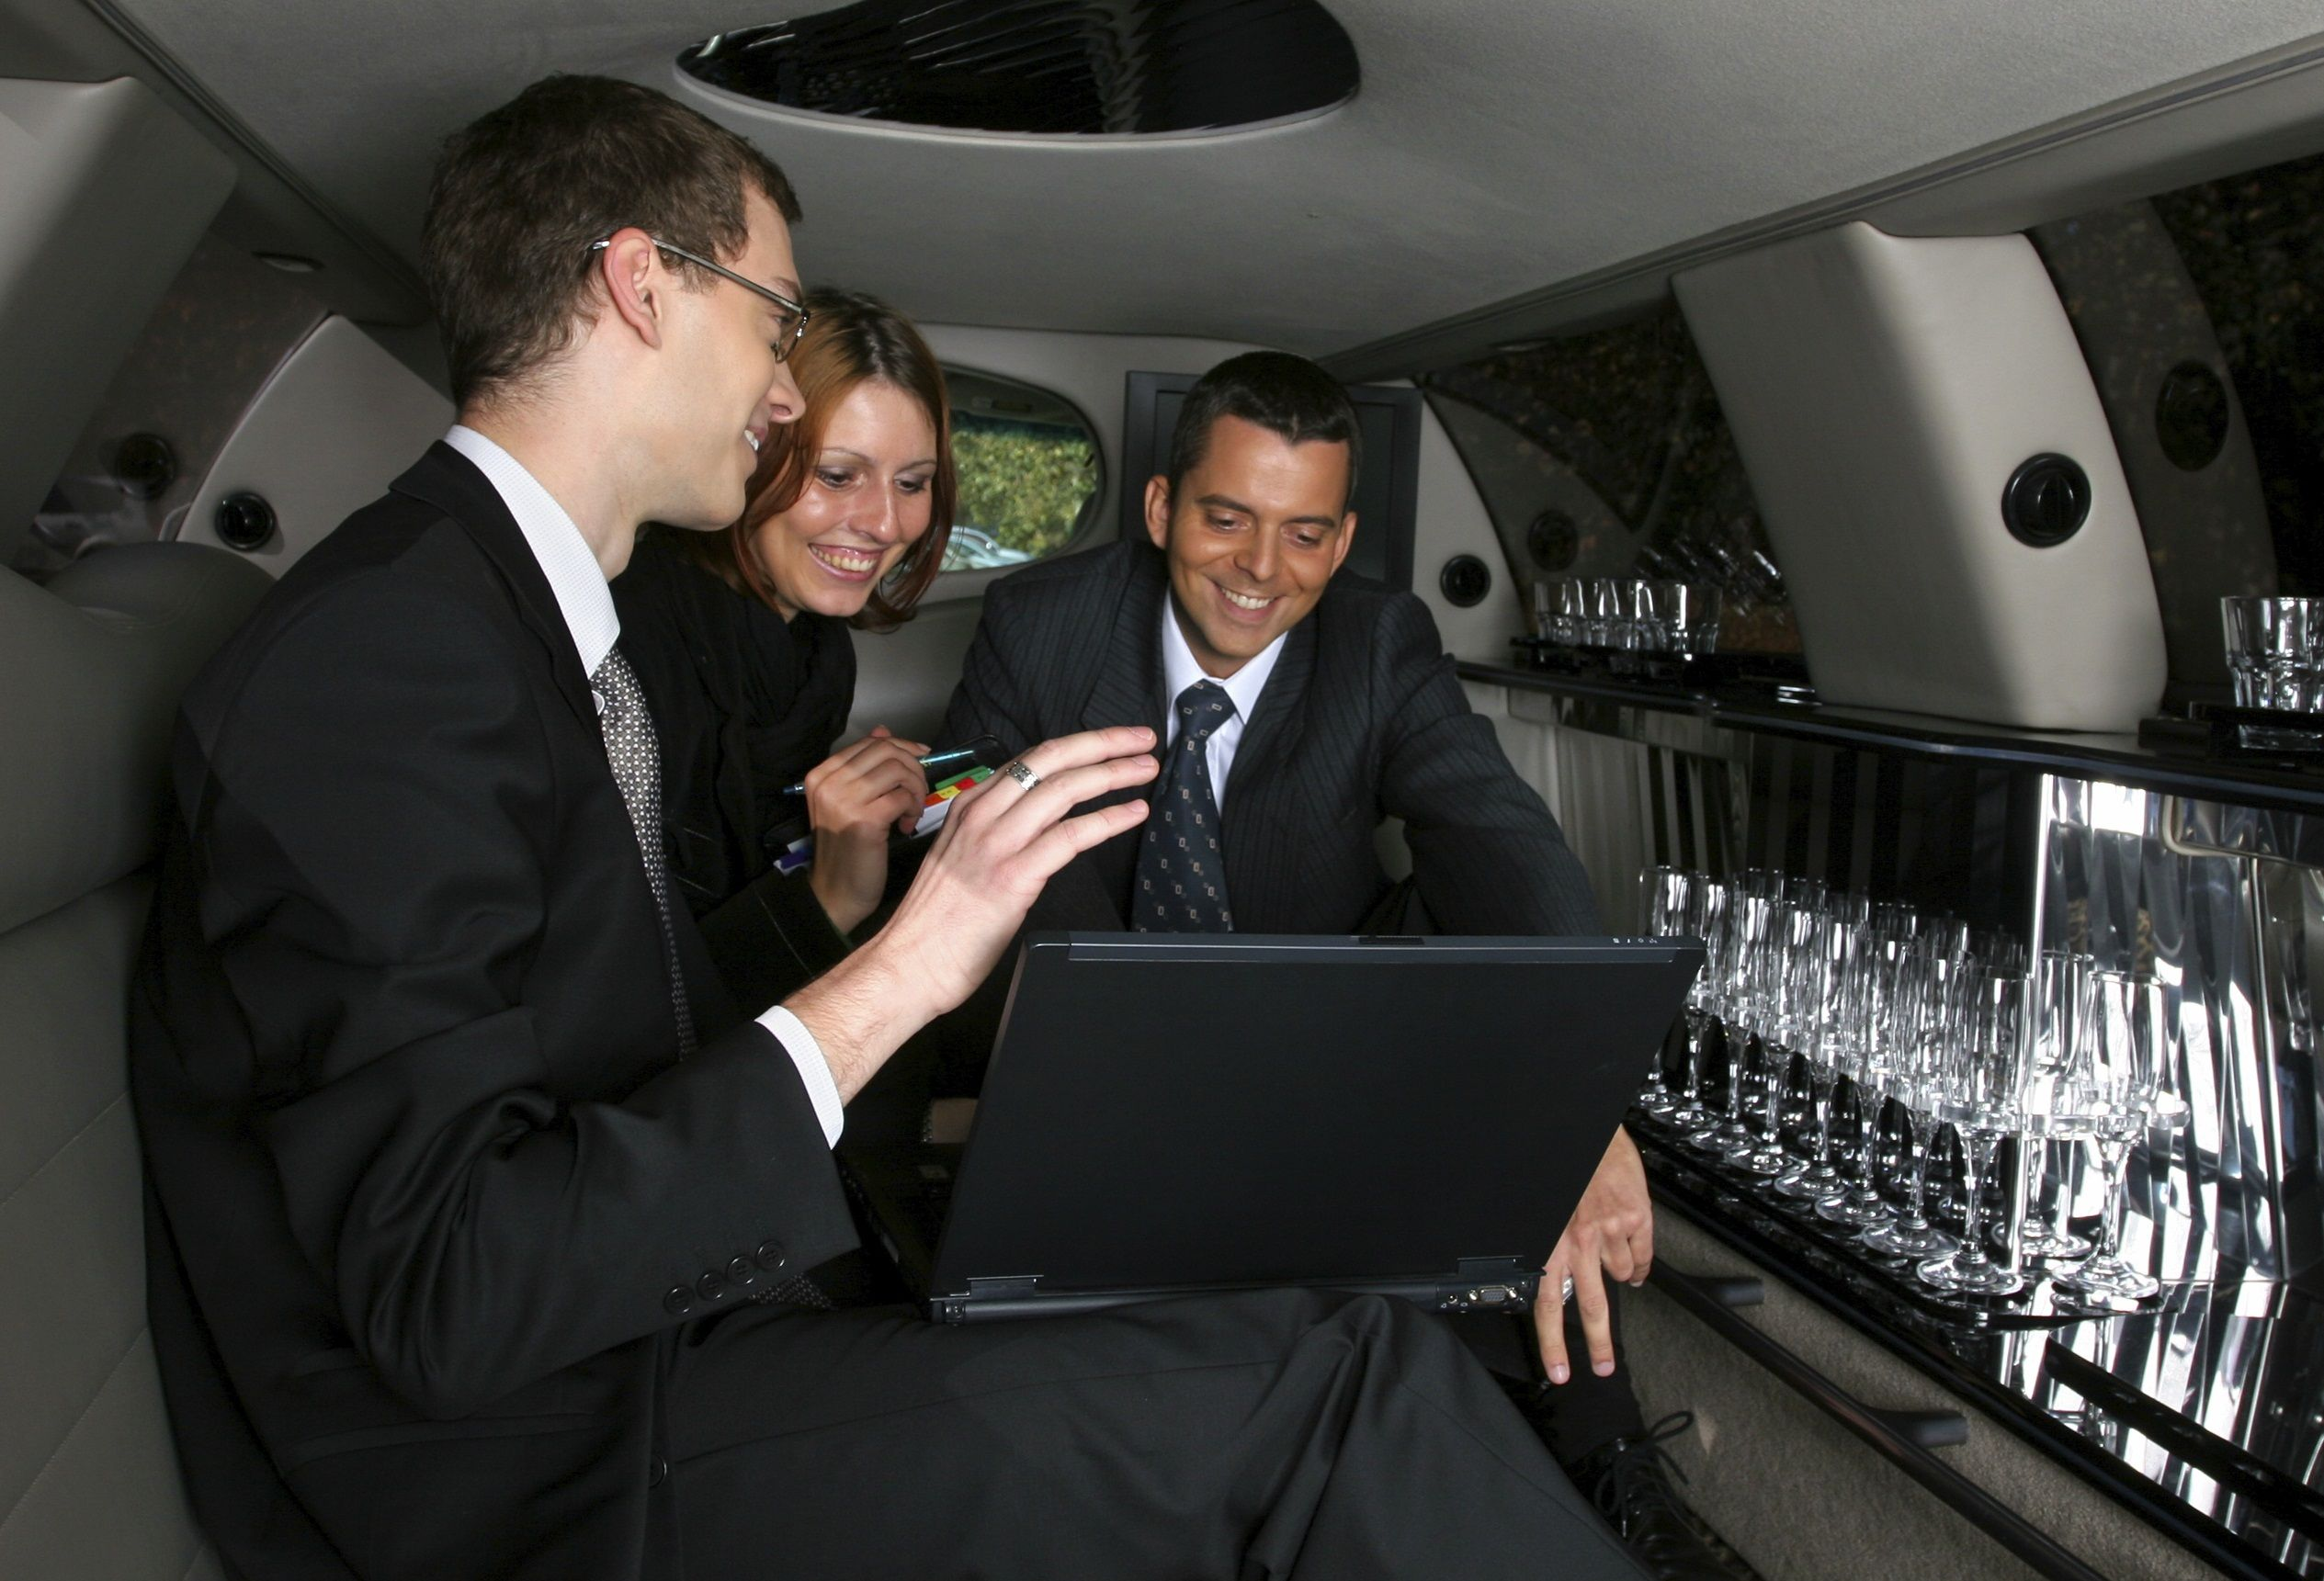 Looking for a Limousine for special Occasions in LA or